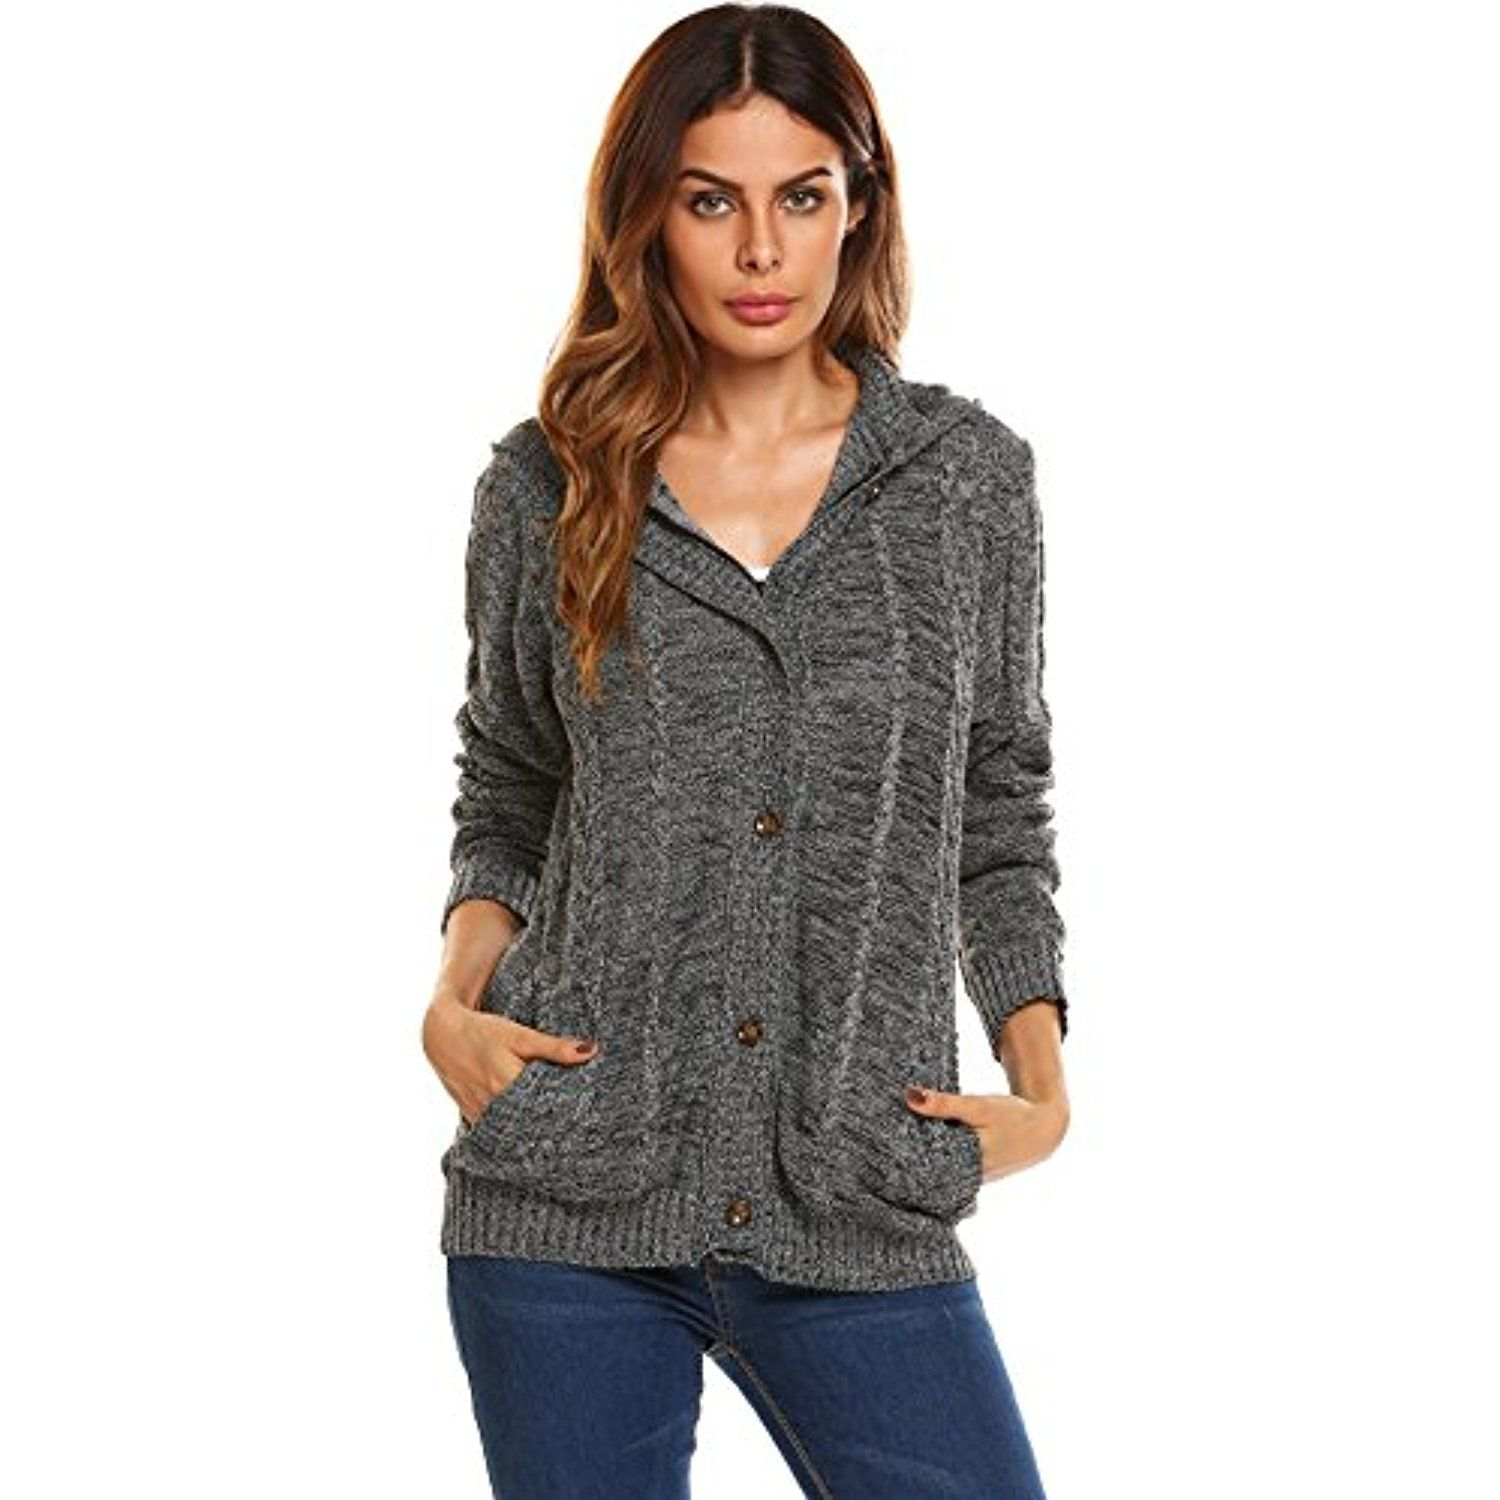 Women's Long Sleeve Pocket Hoodie Cable Knit Cardigan Sweater Coat ...